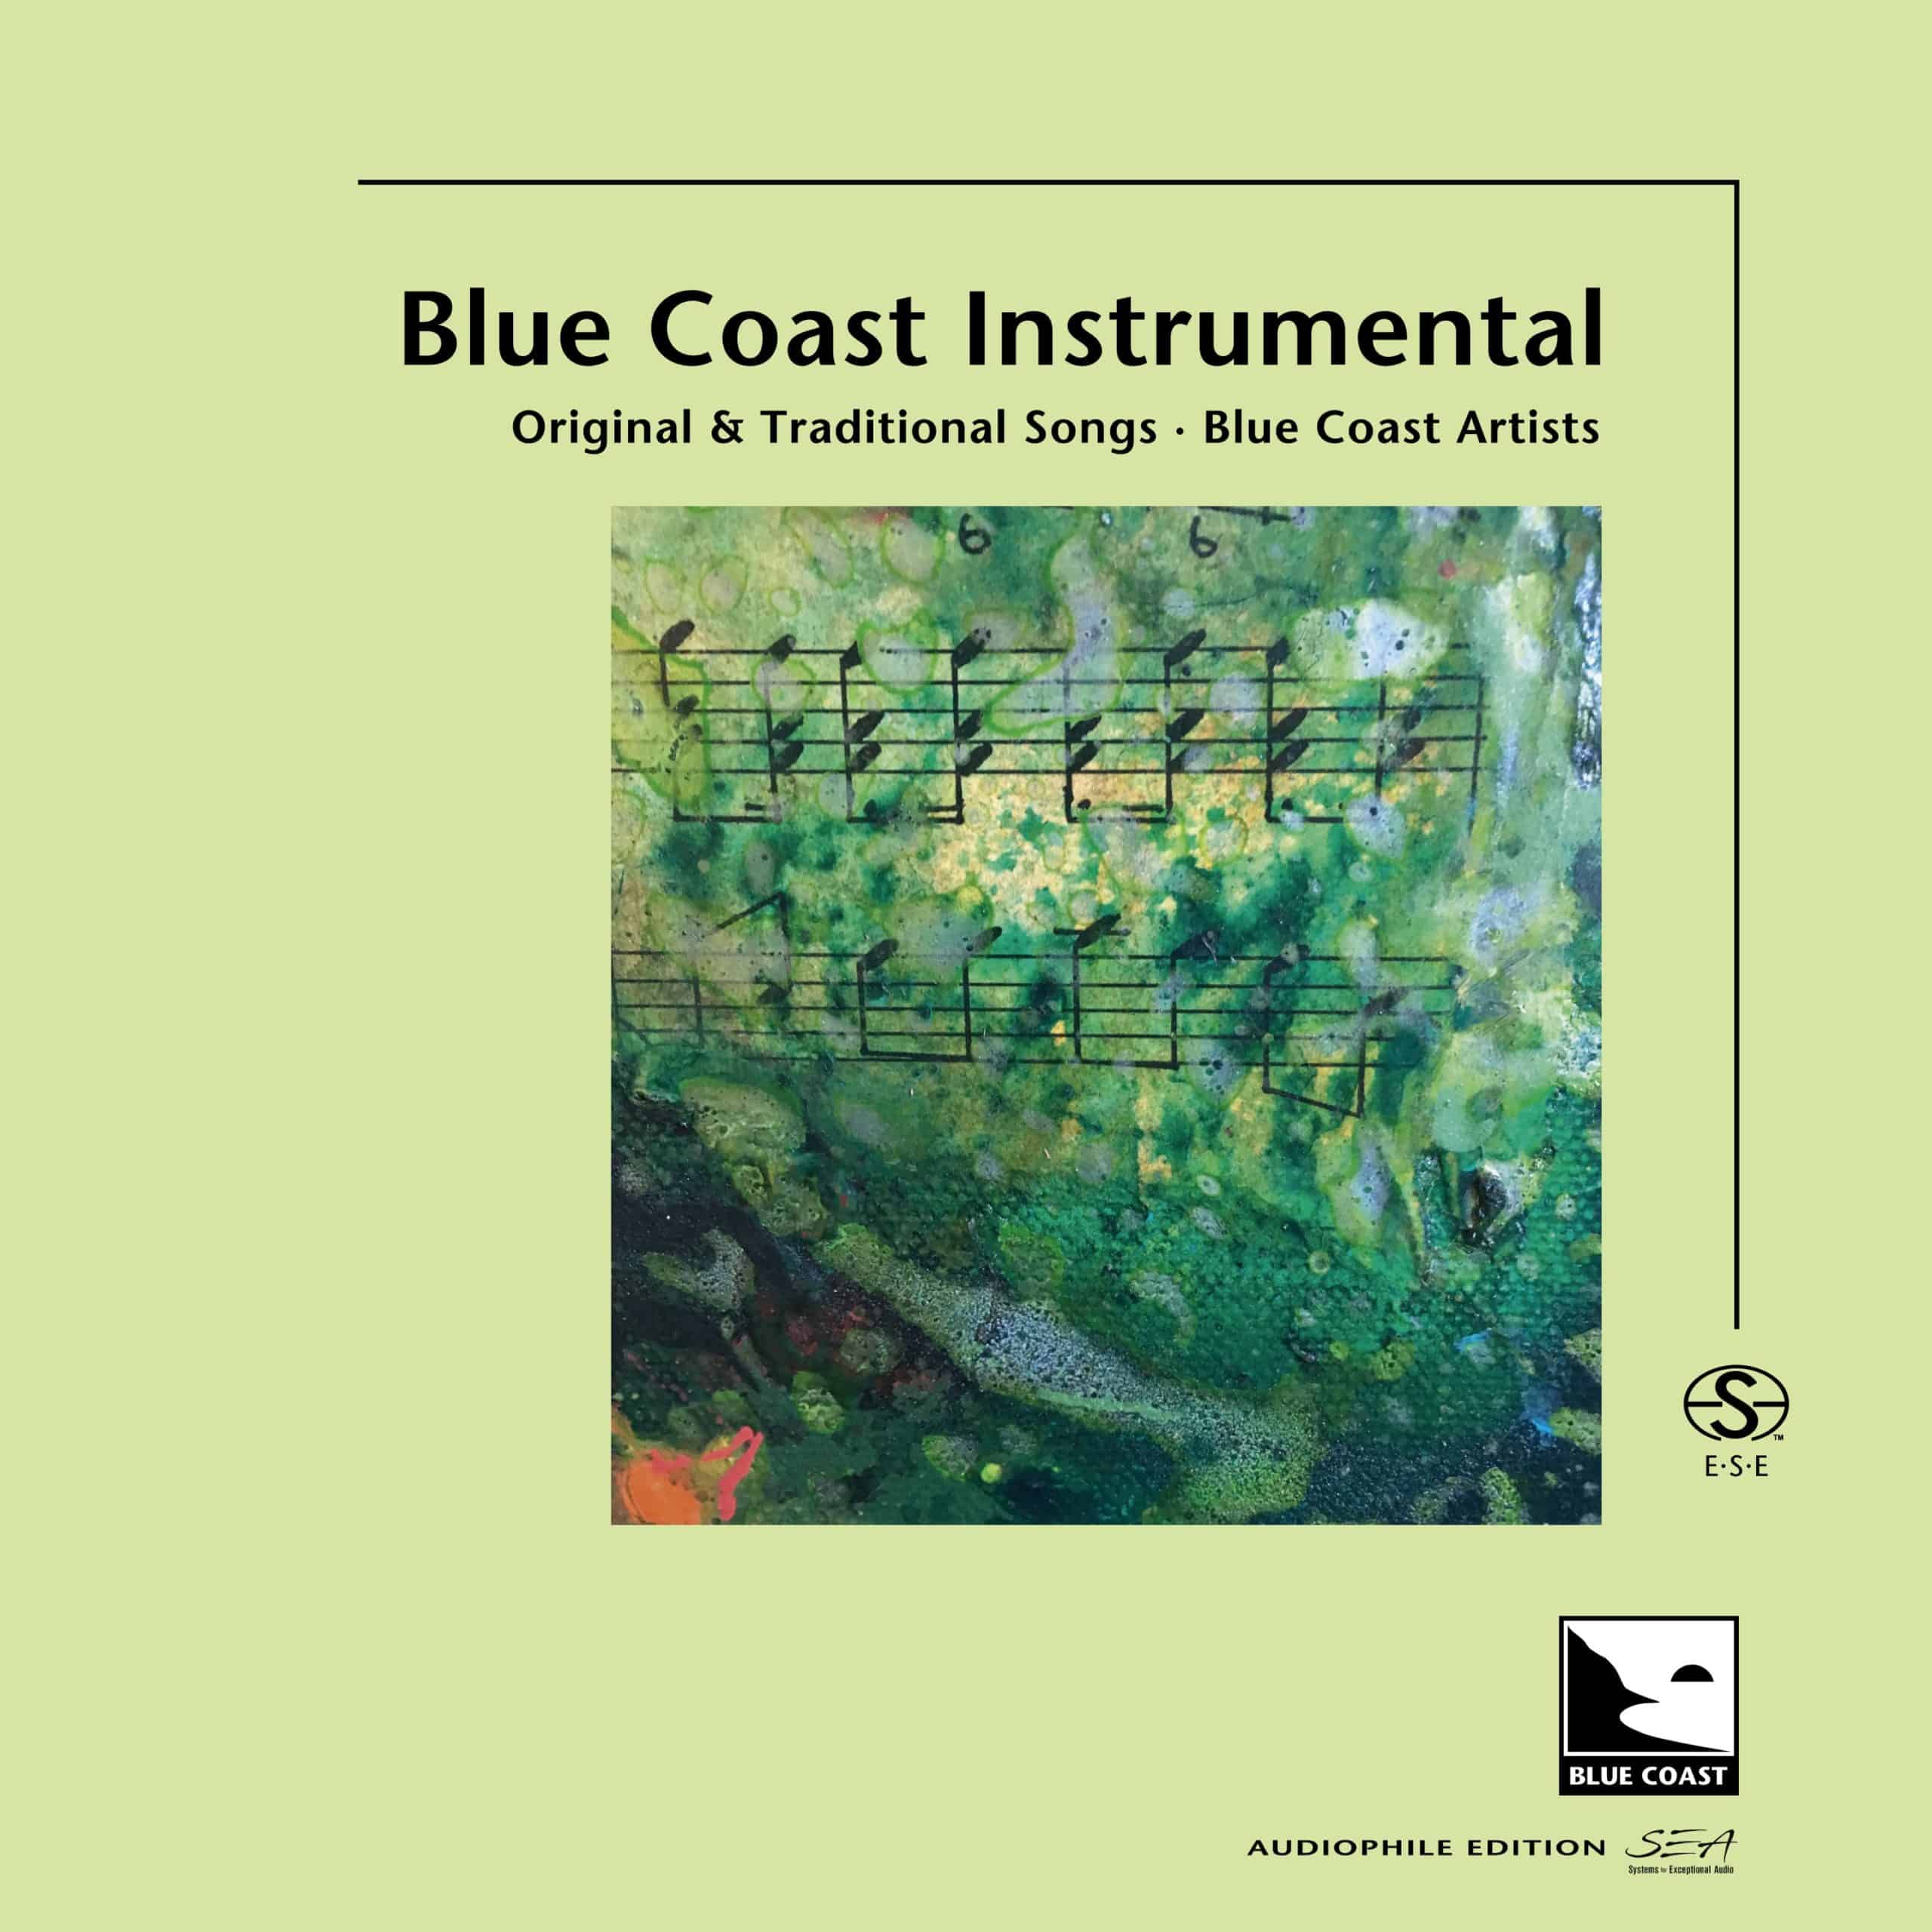 Blue Coast Instrumental